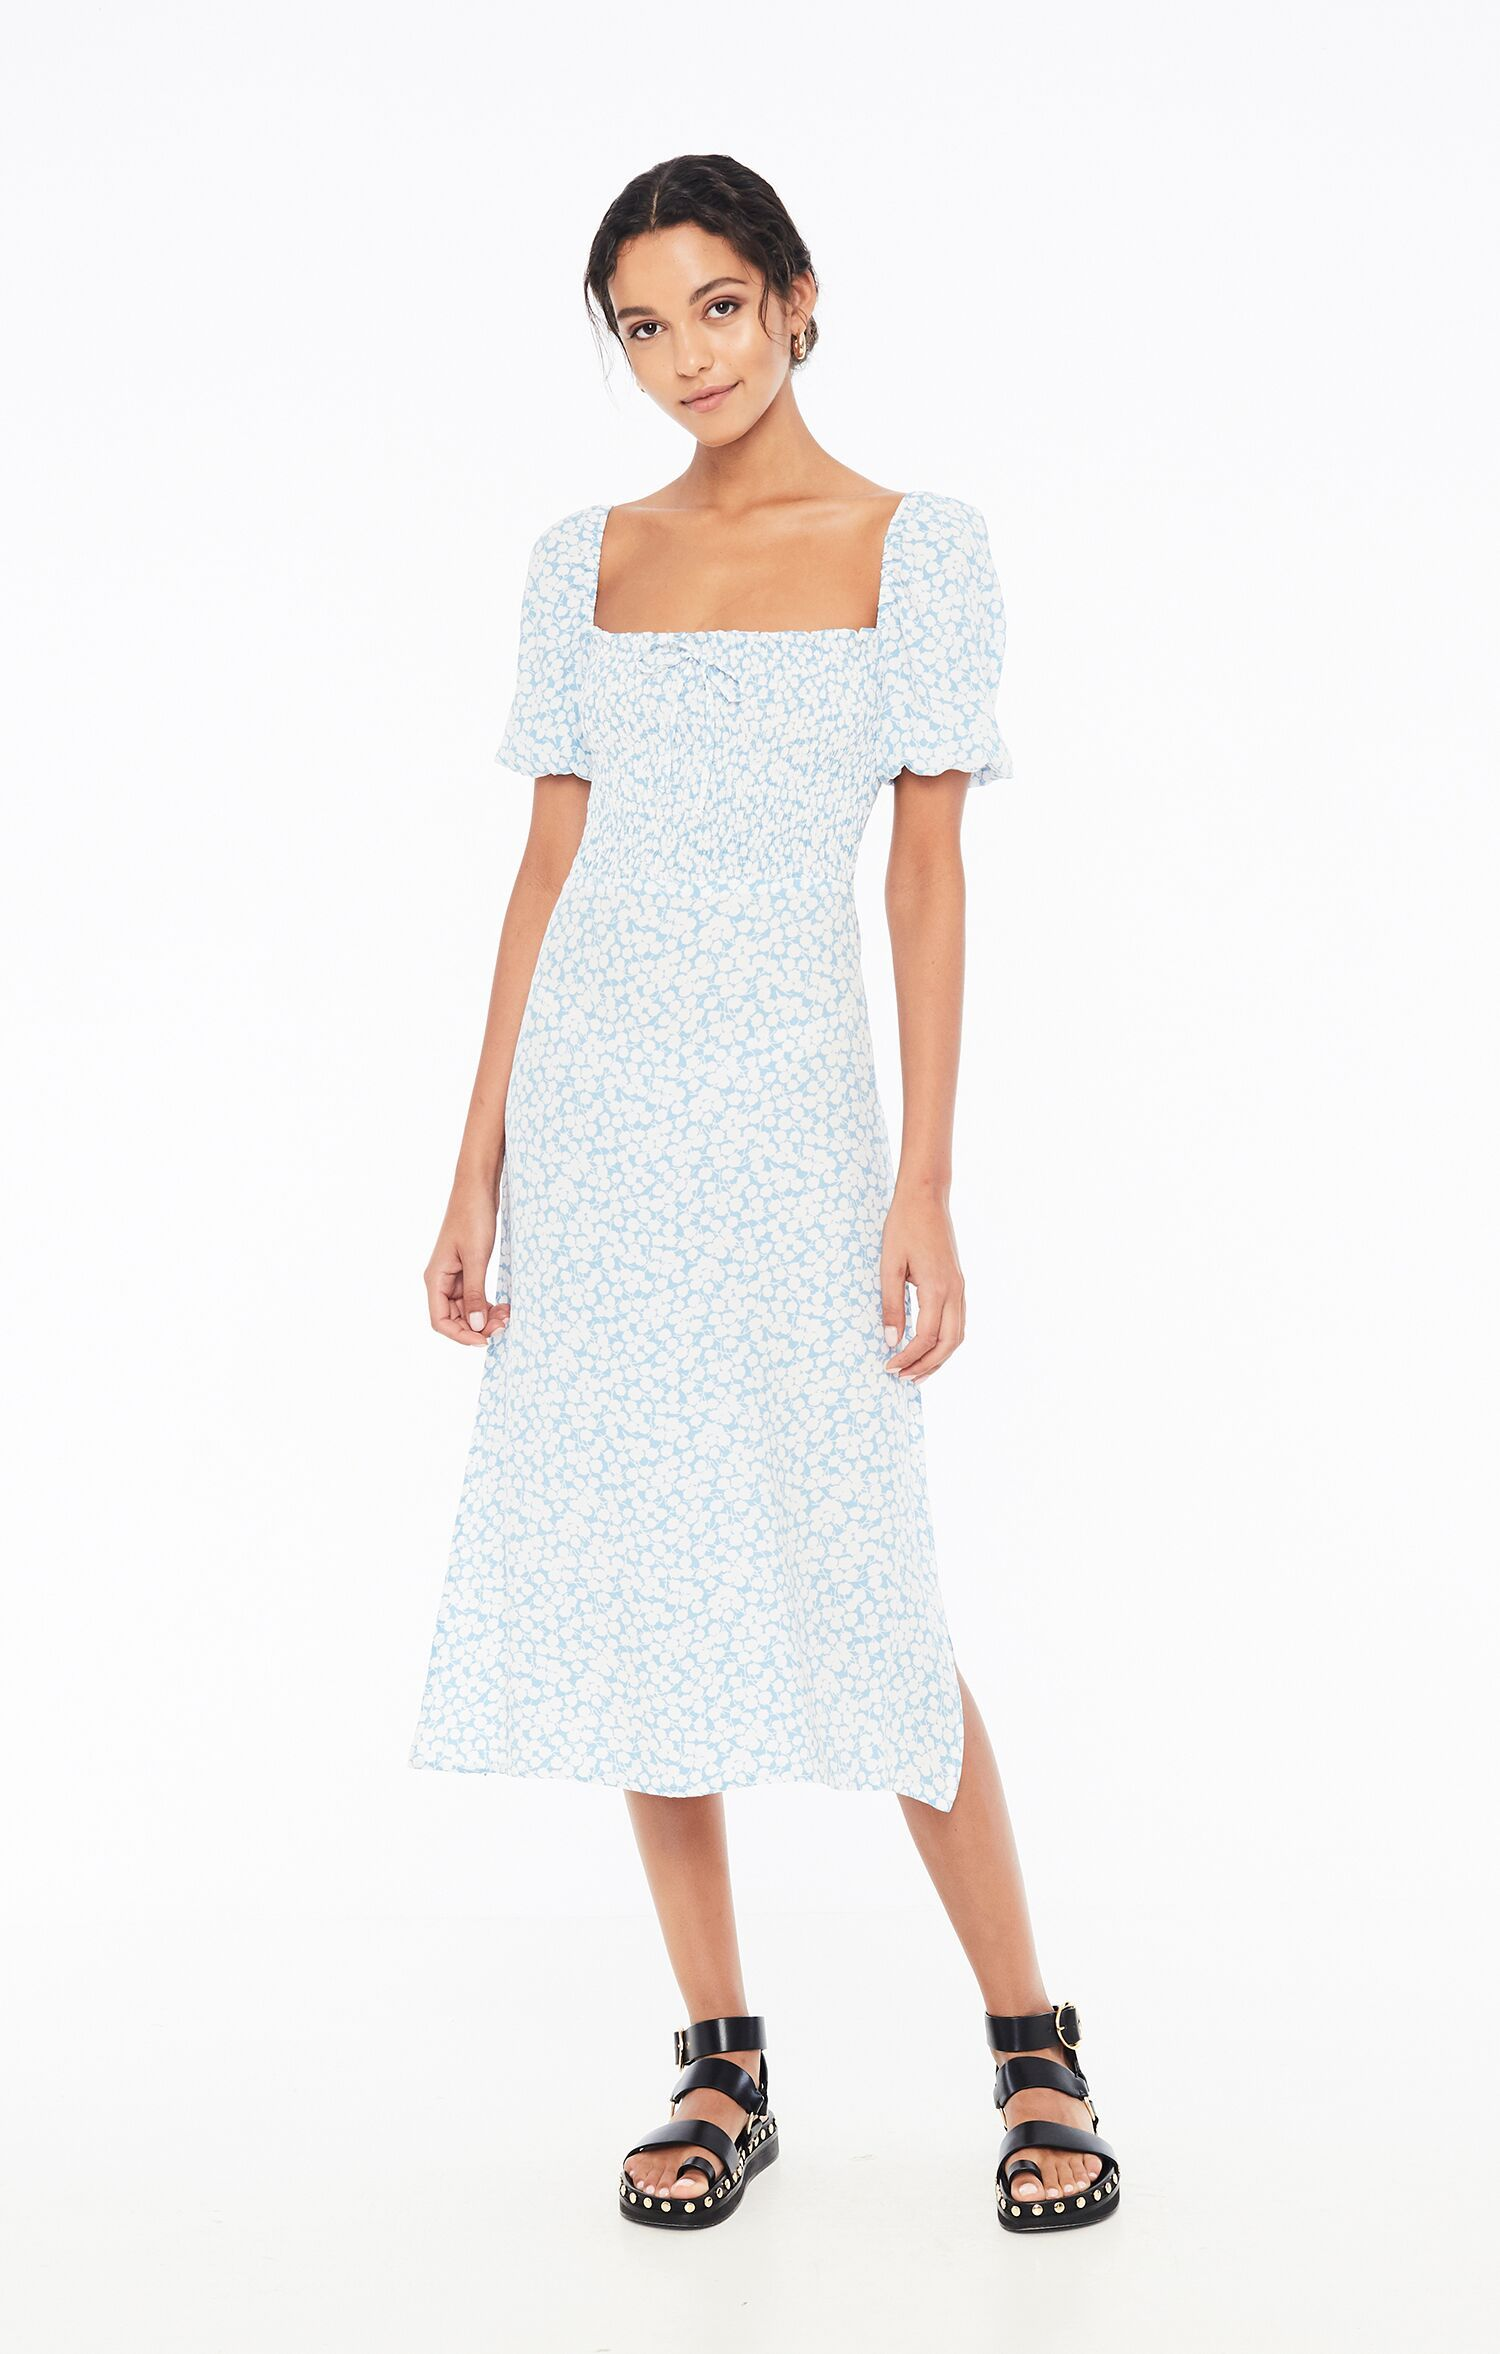 Load image into Gallery viewer, Majorelle Midi Dress in Bella Floral Print Riviera Blue by Faithfull The Brand | Printed Dresses for Women